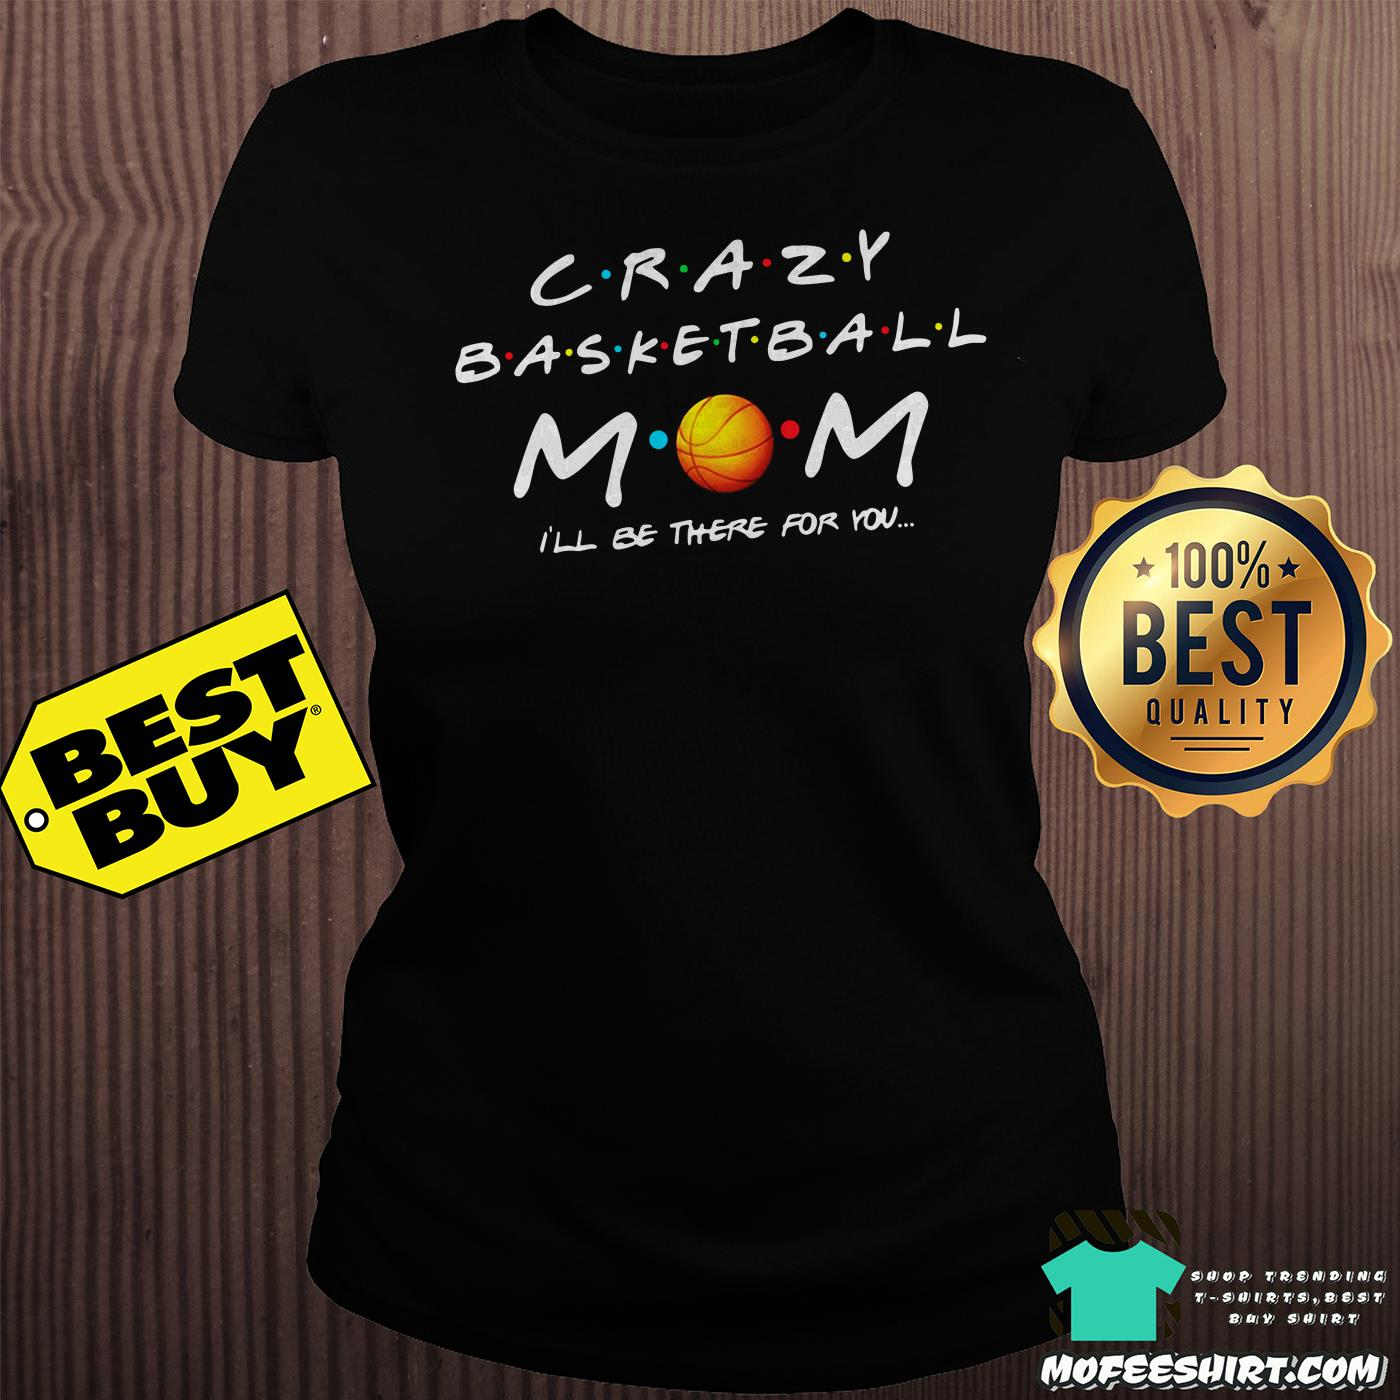 crazy basketball mom ill be there for you ladies tee - Crazy Basketball Mom I'll be there for you shirt